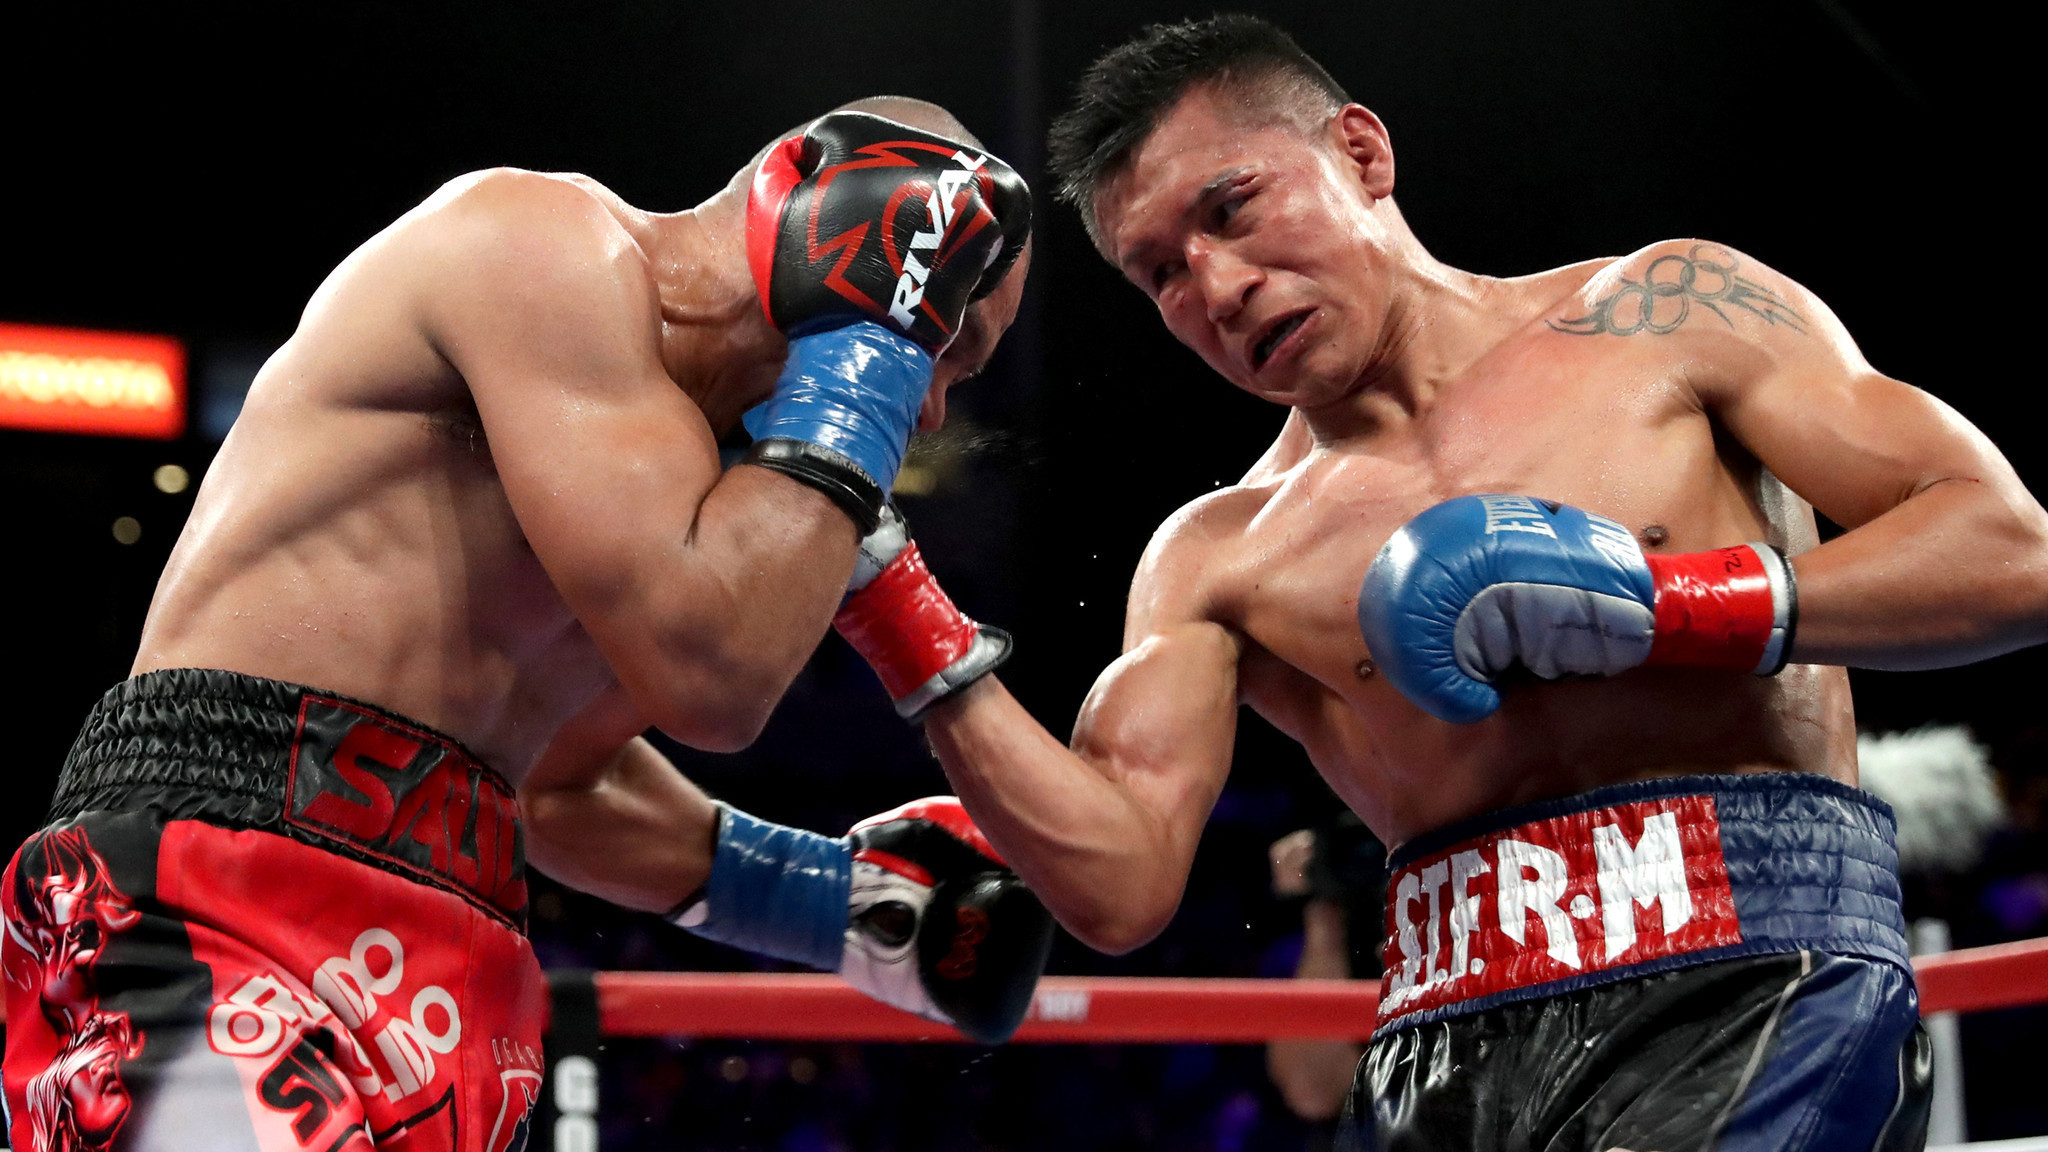 If you don't already have one in mind, be sure to check out the list at the top of this page. There, you'll find our top picks for boxing betting sites. Once you've found the site that's best for you, you'll need to open an account there.